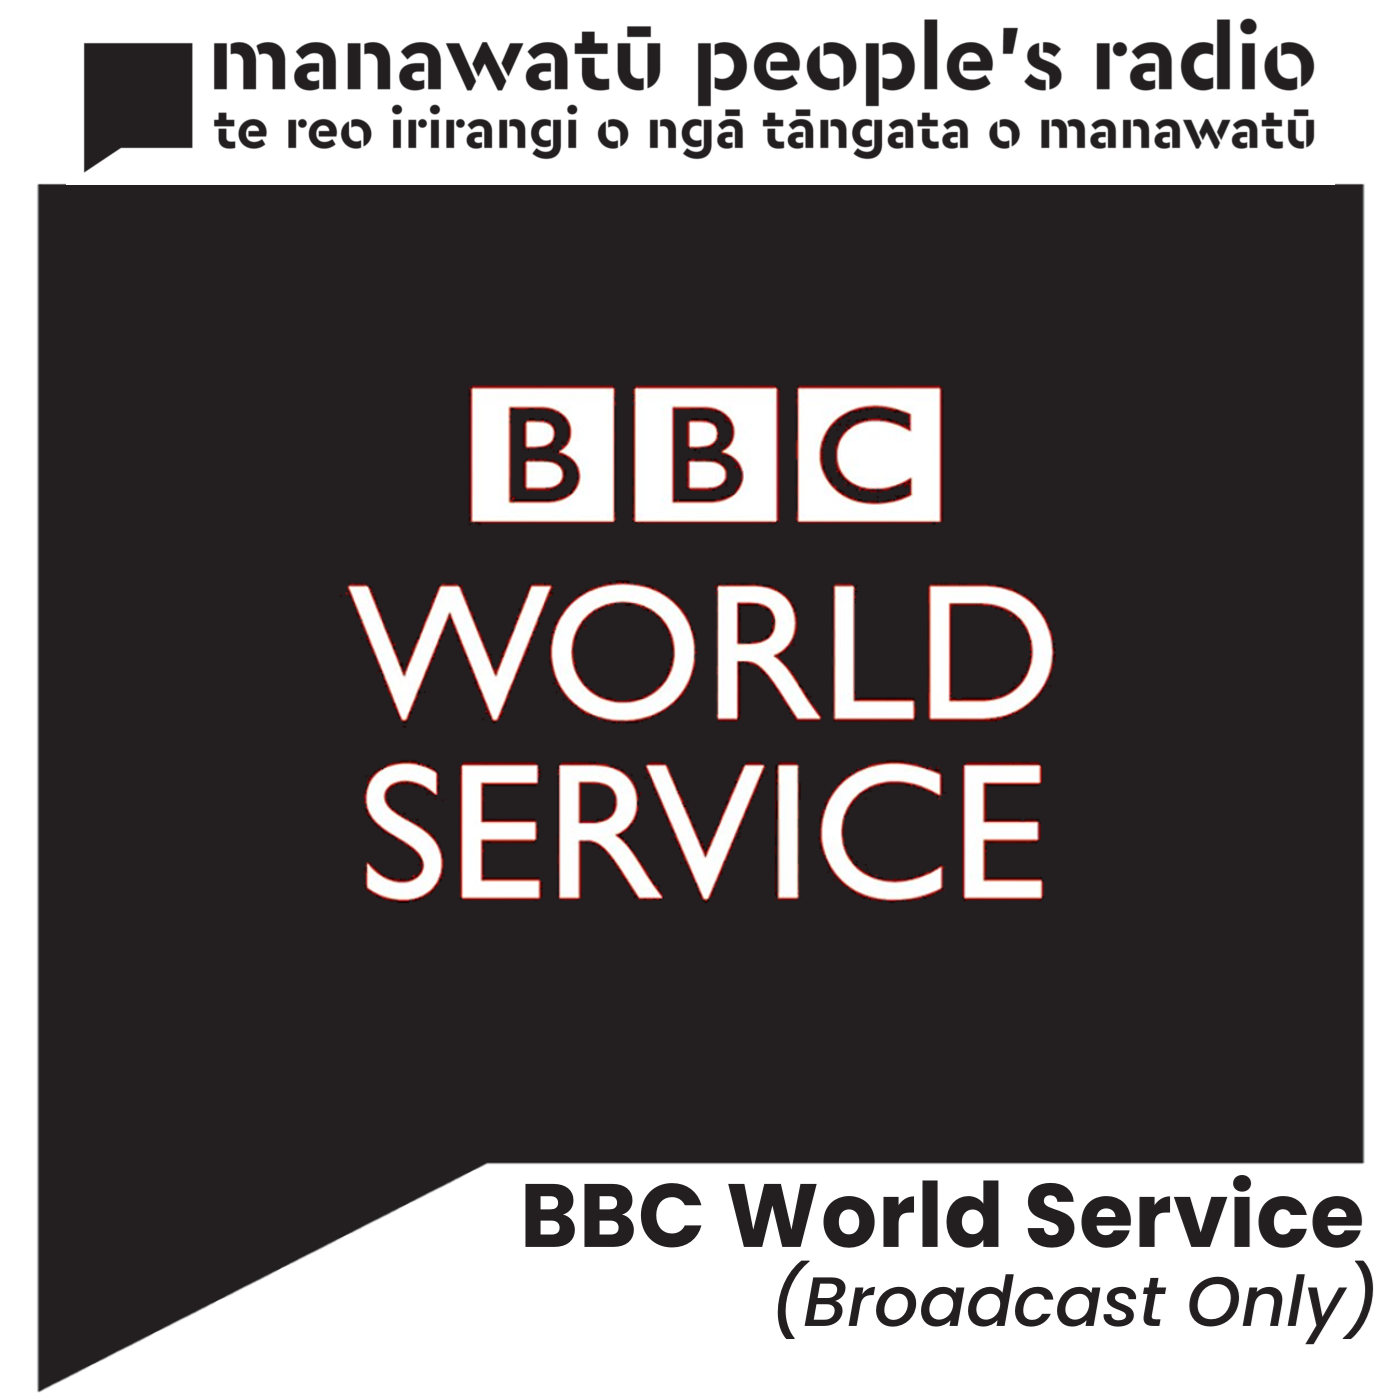 BBC World Service (Broadcast Only)